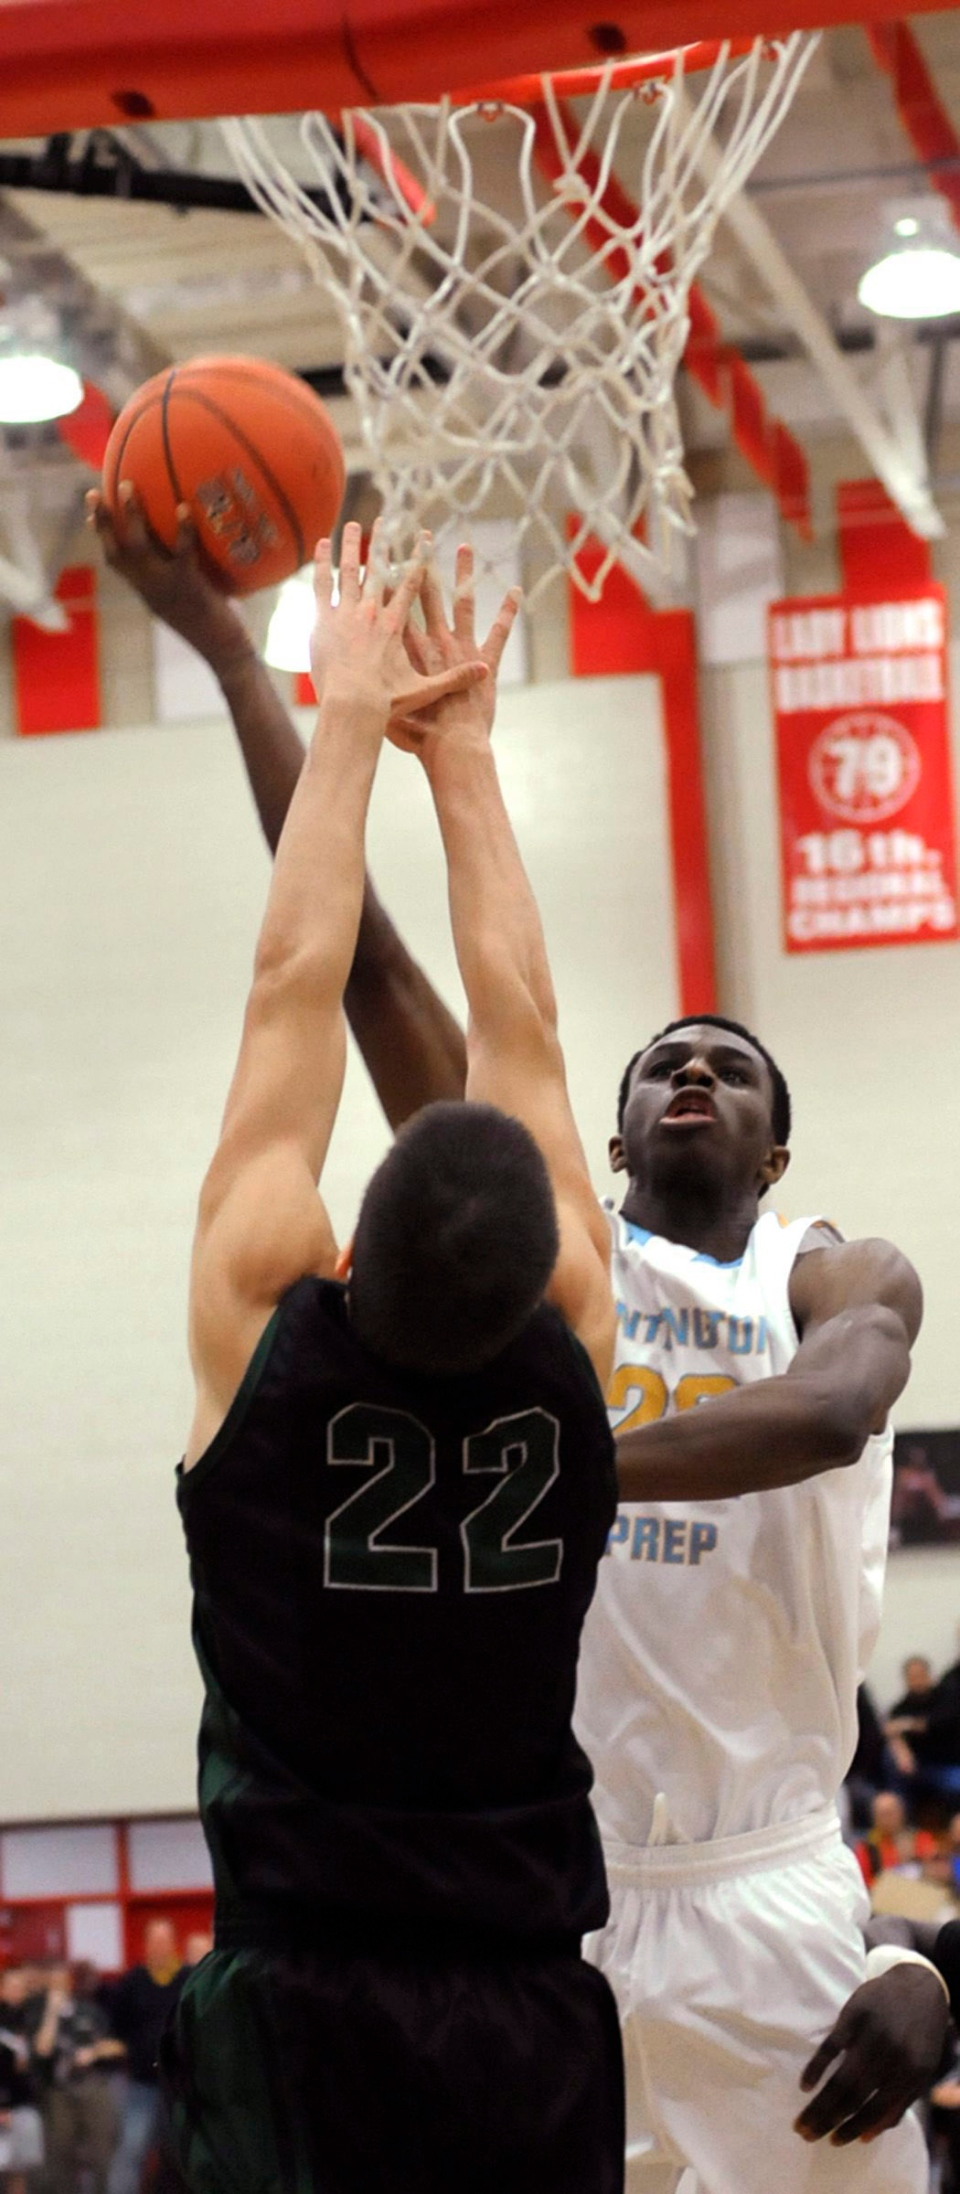 Huntington (WV) Prep's Andrew Wiggins puts up a shot over Nikola Jovanovic of Arlington Country Day (FLA) during the first quarter of their game in the Boyd County Roundball Classic basketball tournament in Summit, Ky., on Saturday, Dec. 15, 2012. (AP Photo/The Independent, Kevin Goldy)